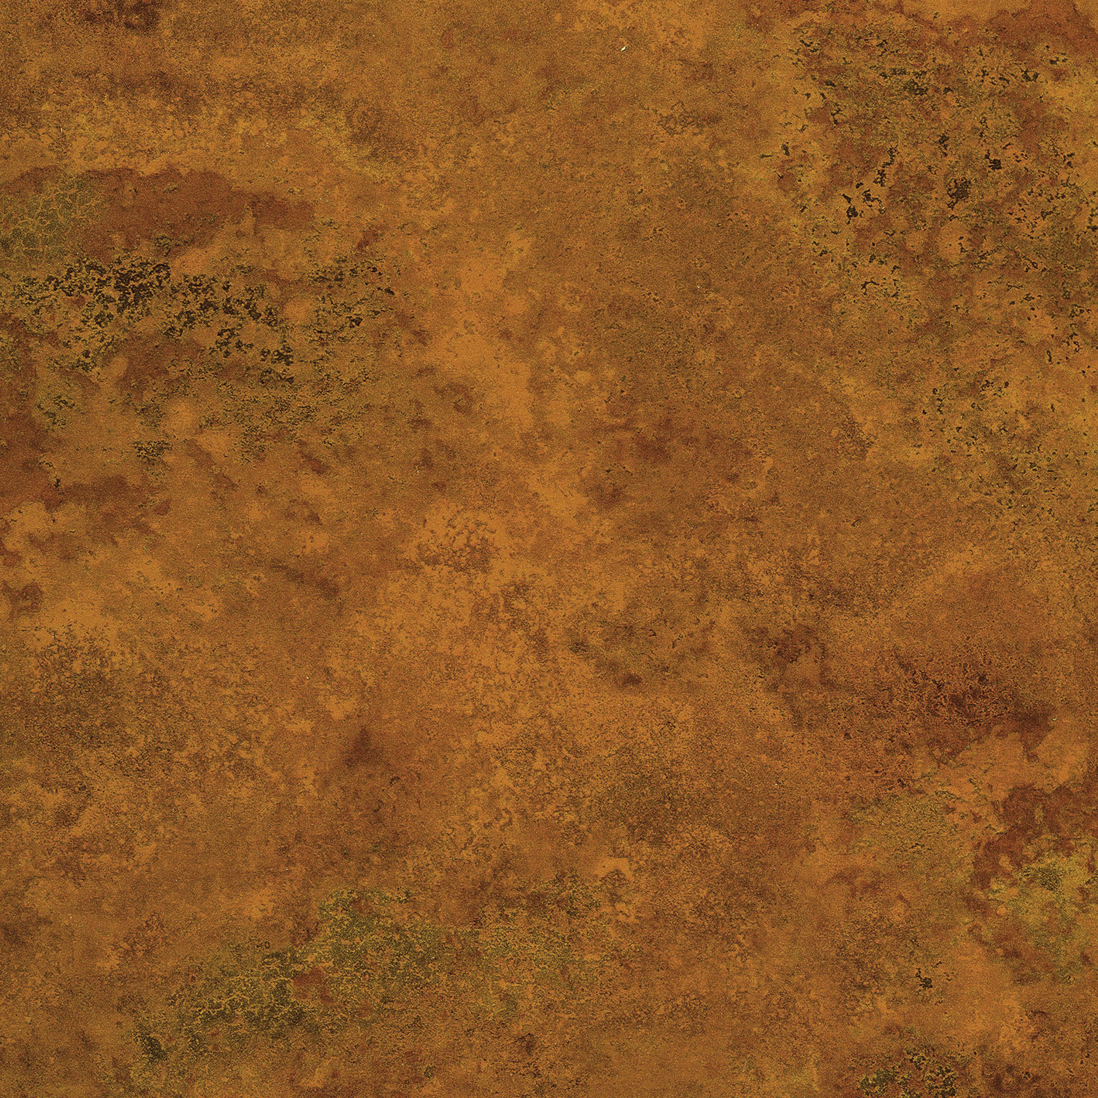 iron, texture, image, iron texture, metal, metal, background, download photo, rust